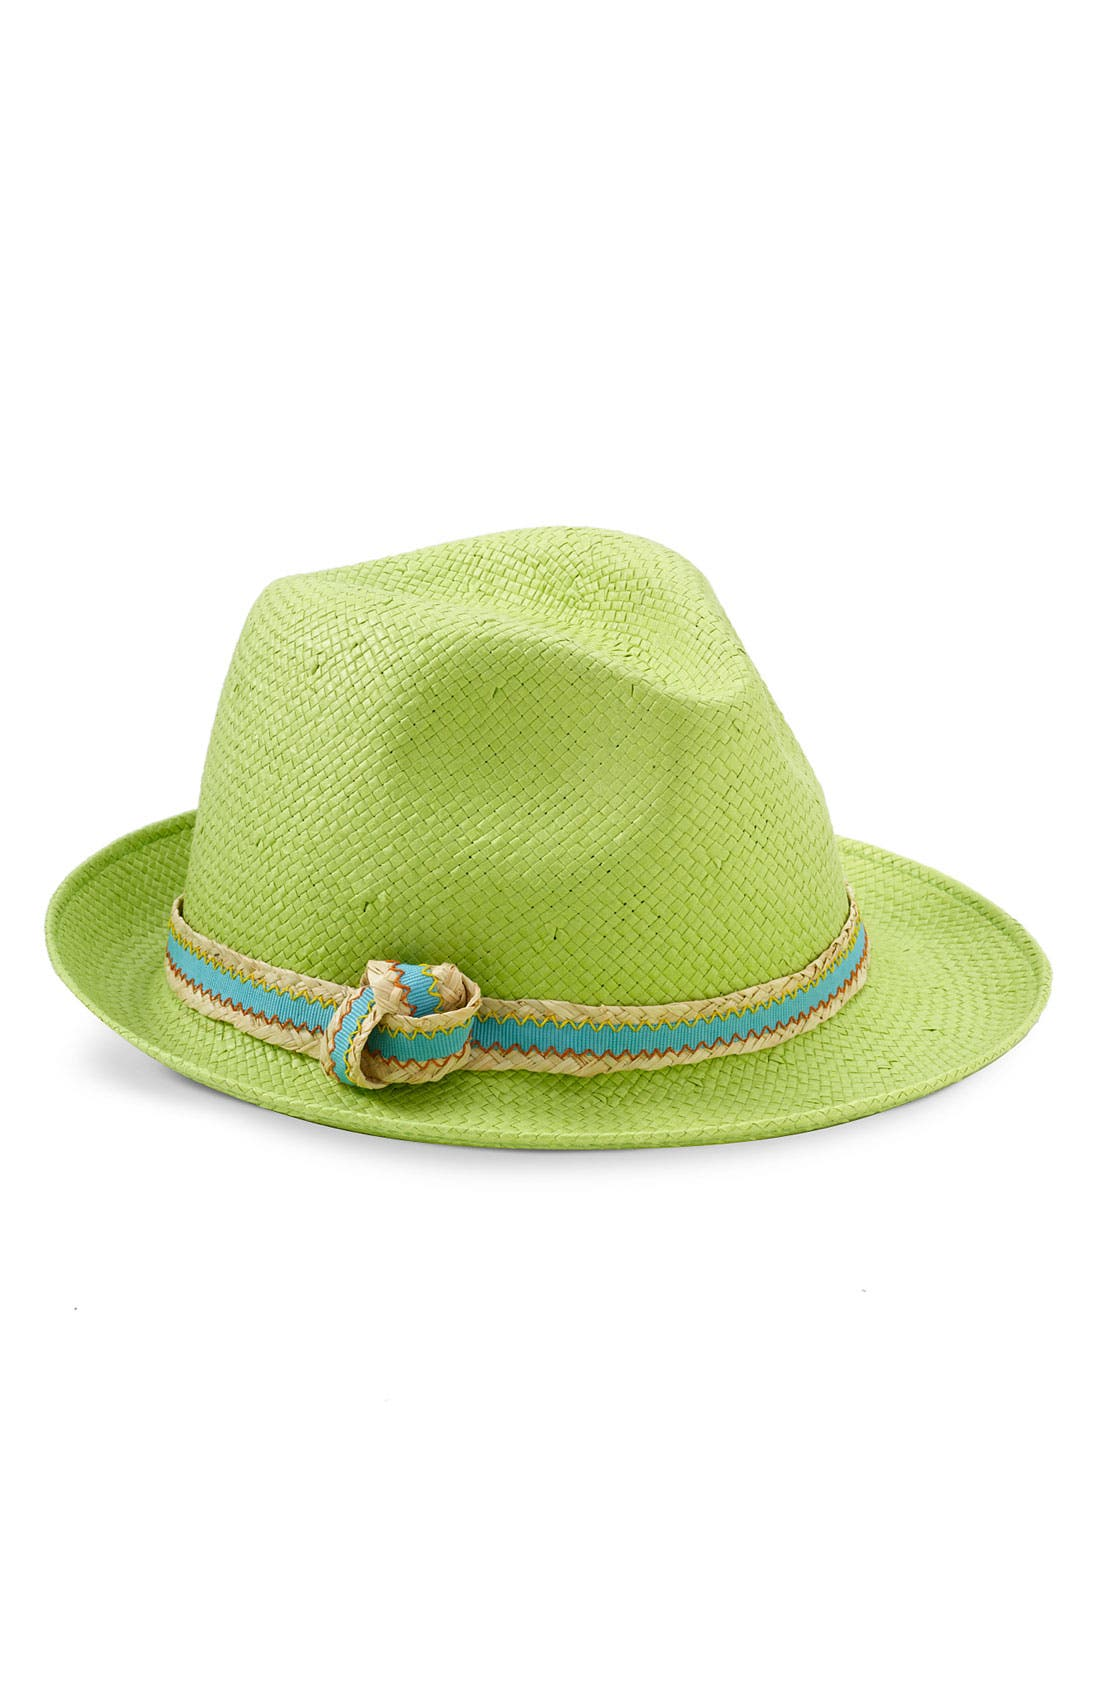 Alternate Image 1 Selected - Tarnish Straw Fedora with Contrast Trim